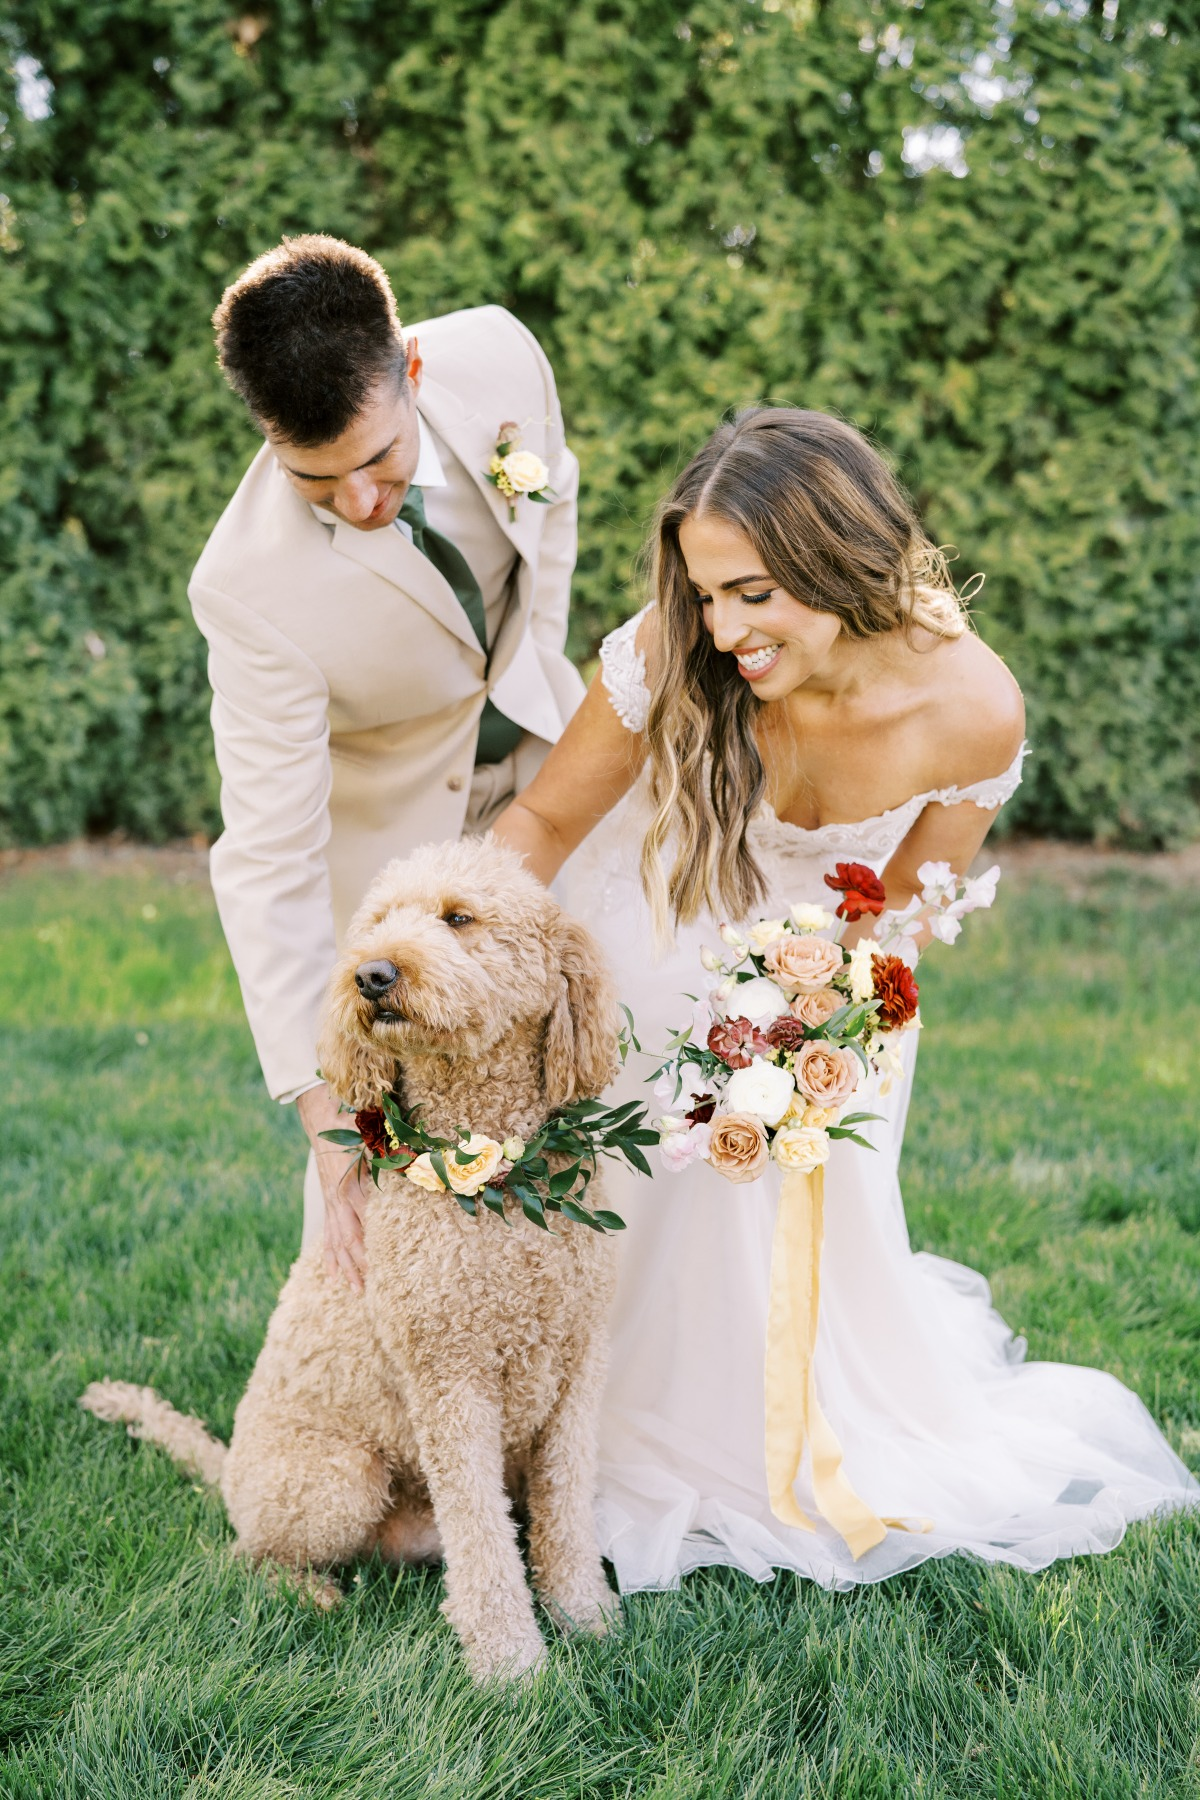 A Fall Rustic Vow Renewal With Mid Century Decor